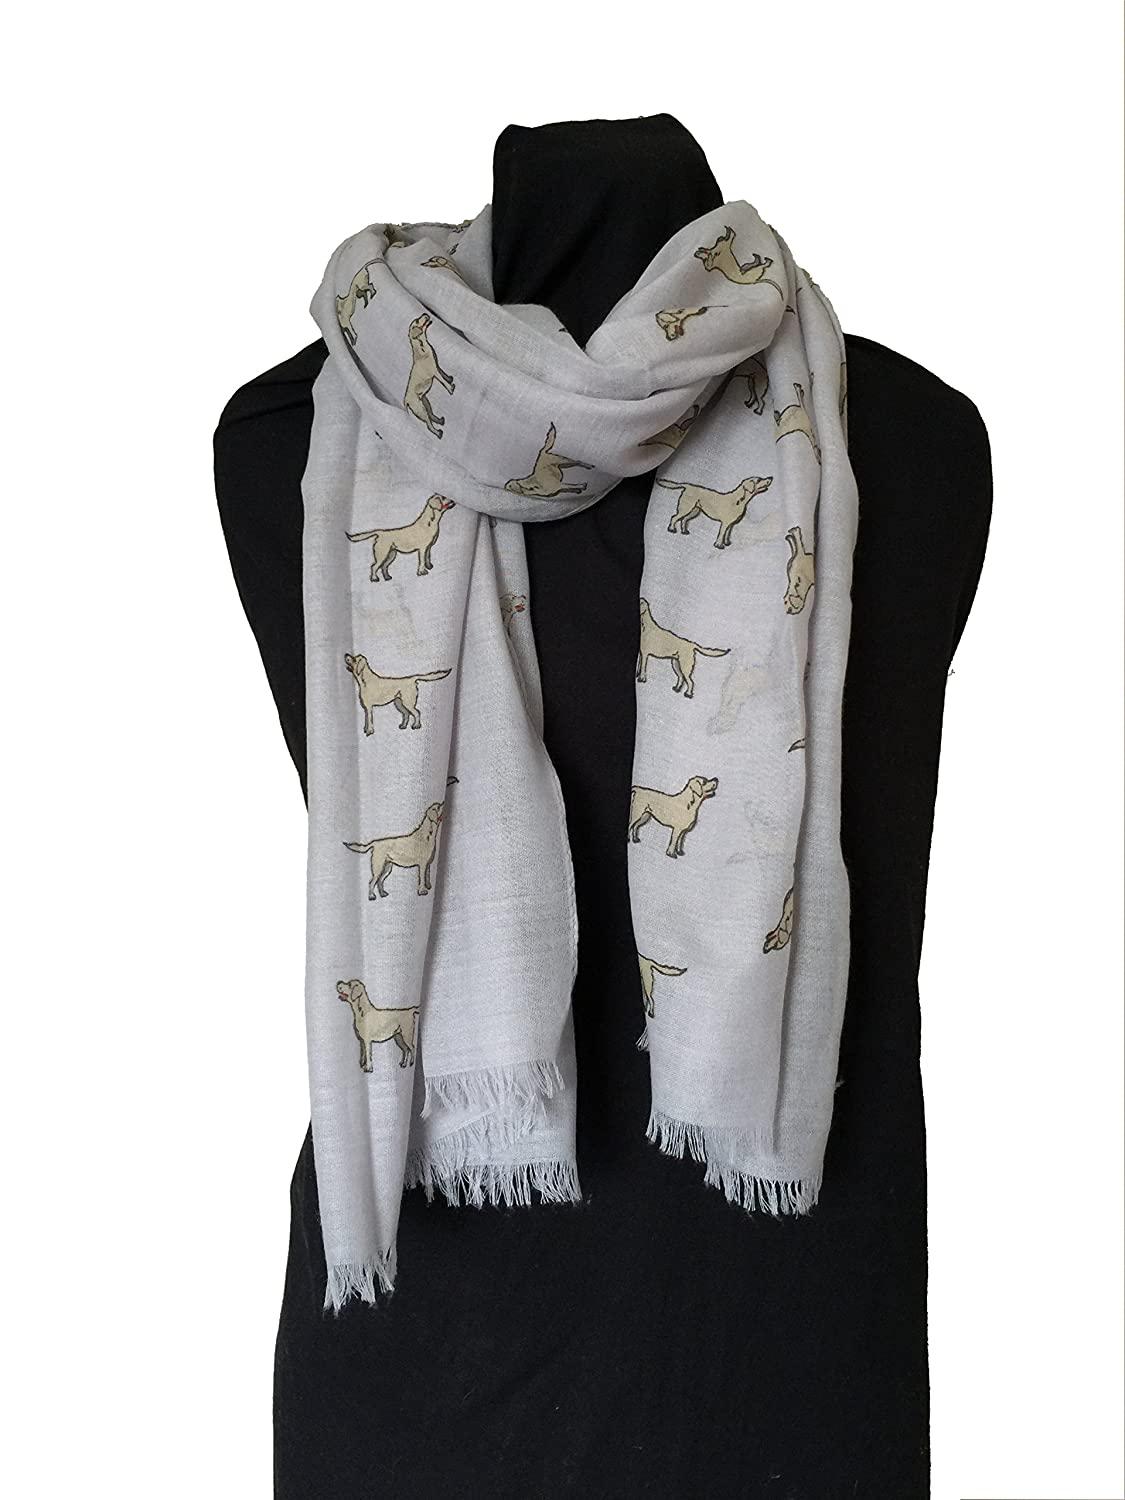 Pamper Yourself Now ltd Bufanda Gris con dise/ño Labrador y Borde Deshilachado Grey Labrador Design 2 Long Scarf with Frayed Edge.